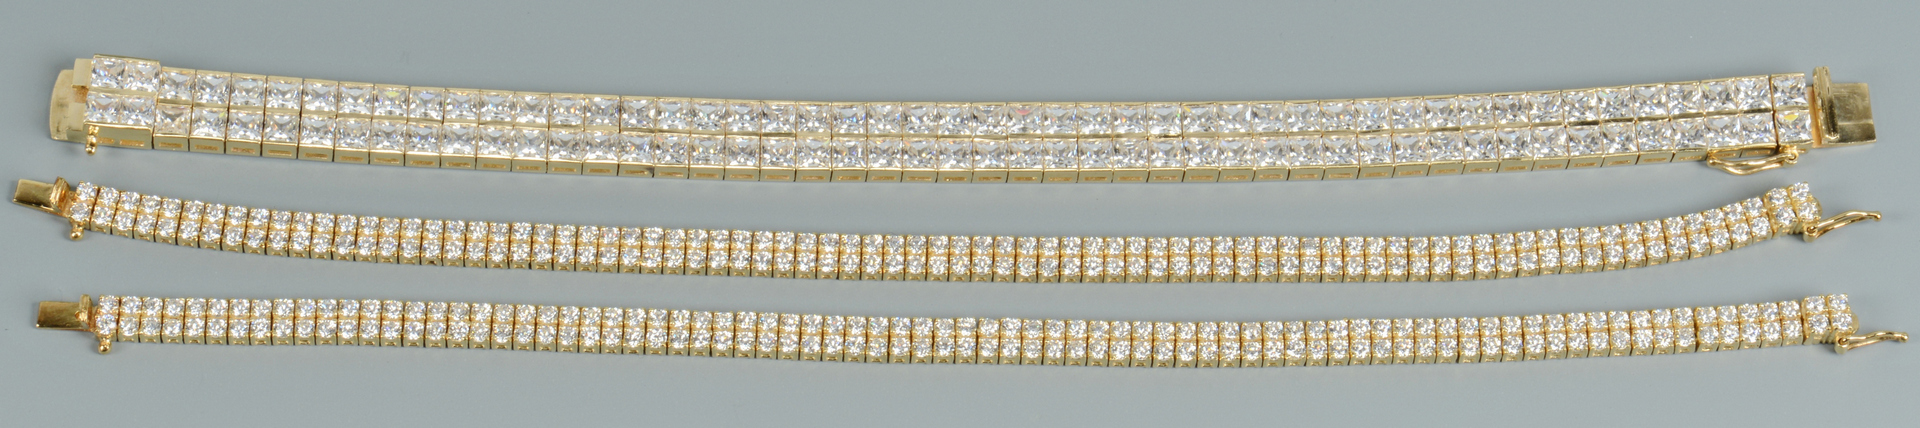 Lot 3088062: Travel Jewelry incl 14k with Synthetic Stones